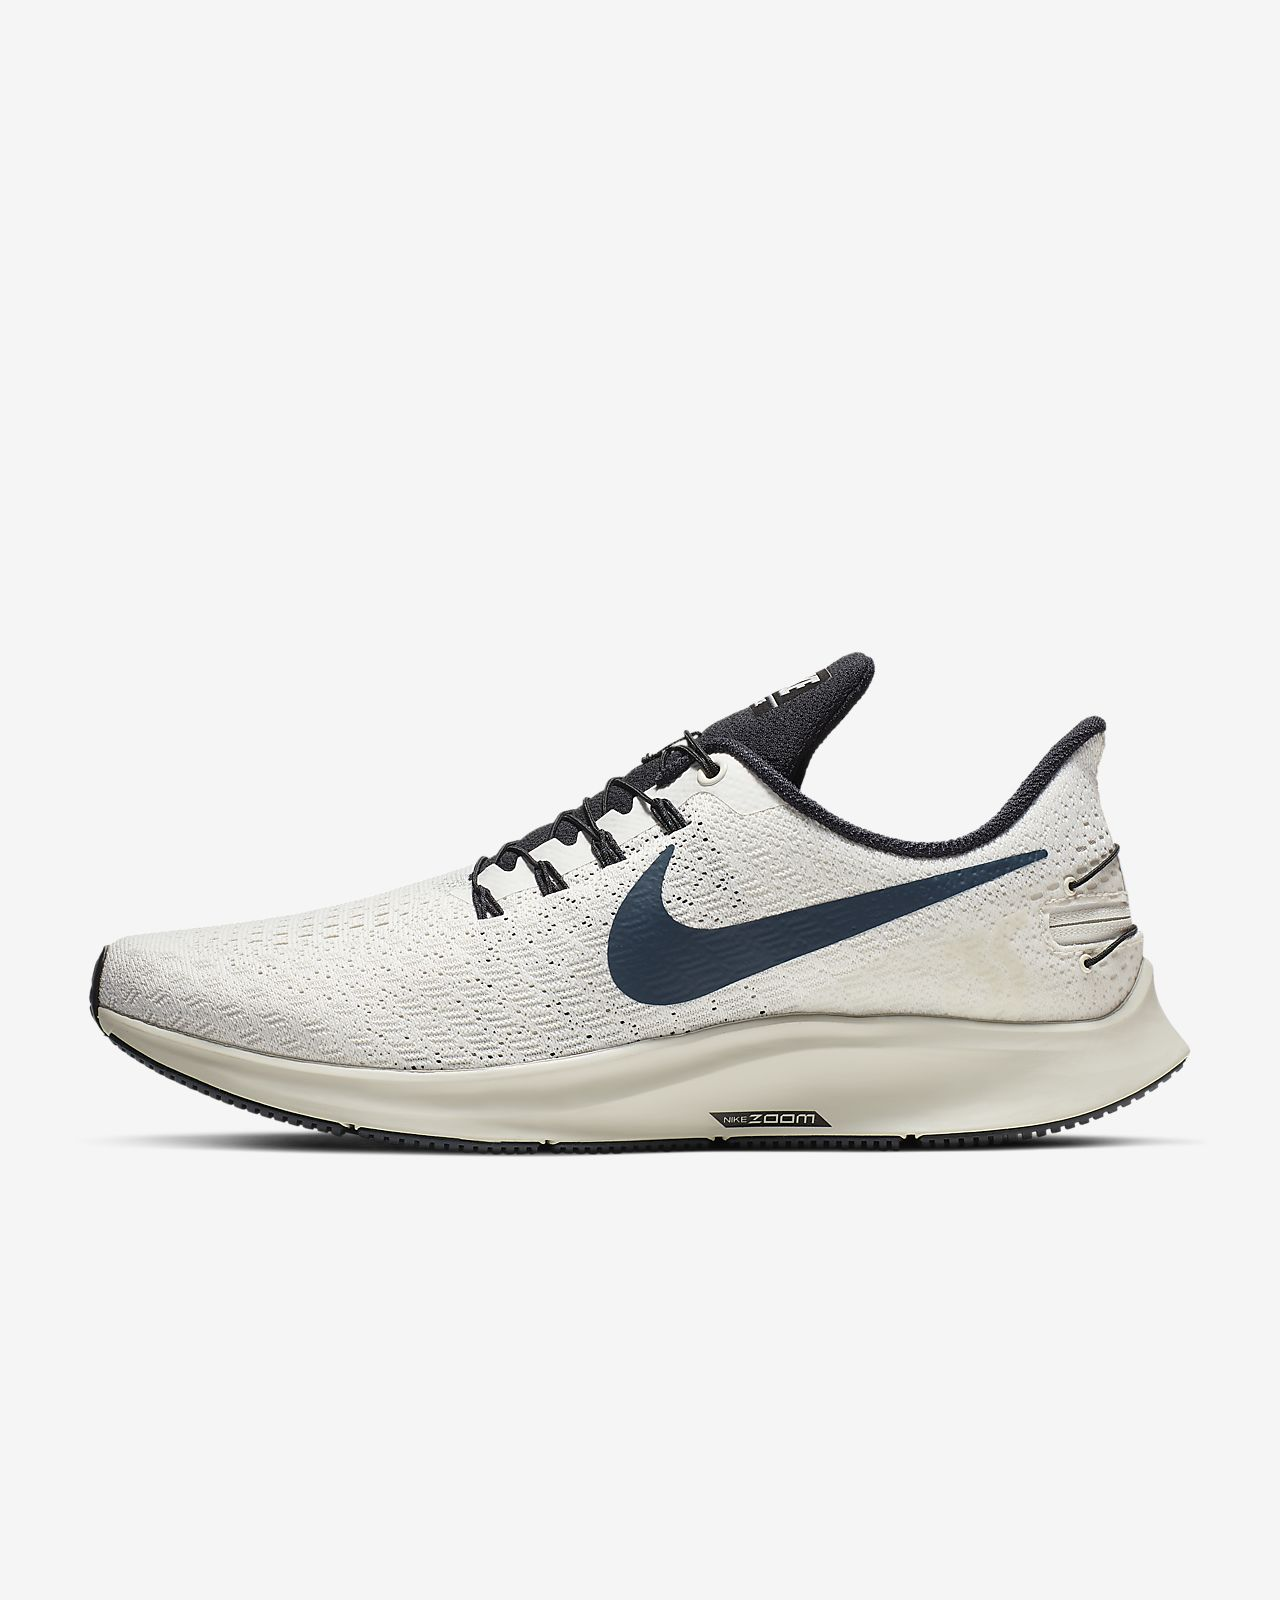 428b73a5cfa Nike Air Zoom Pegasus 35 FlyEase Men s Running Shoe. Nike.com